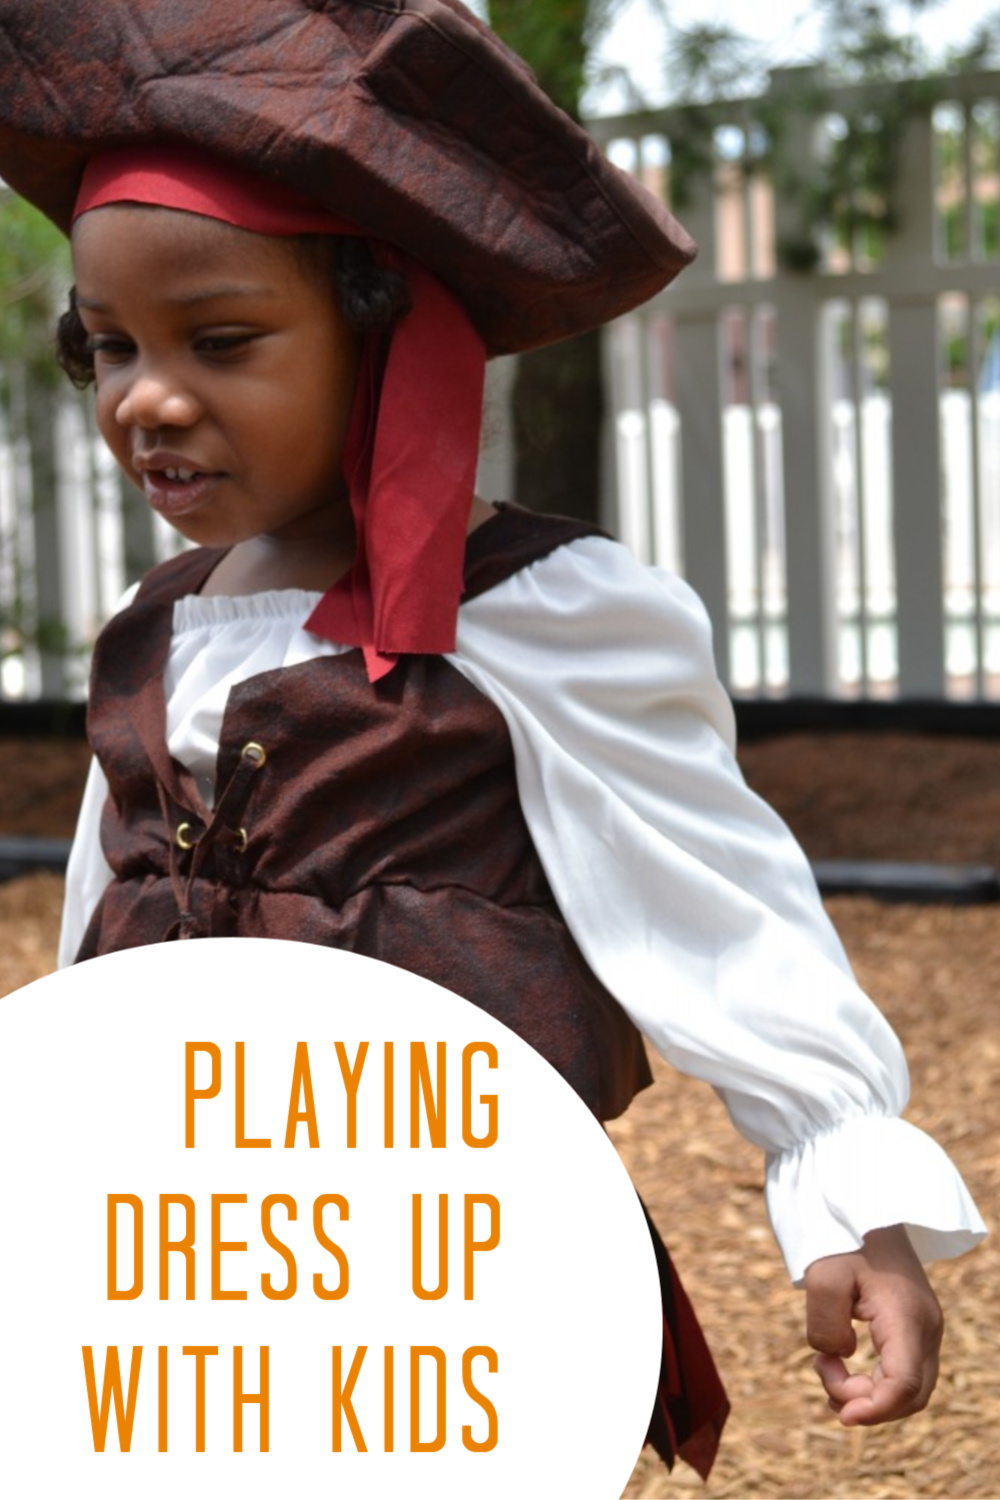 Playing dress up with kids is a great way to get them active, and stretch their imagination. This mom shares how she does it with her 2 and 7 year old.